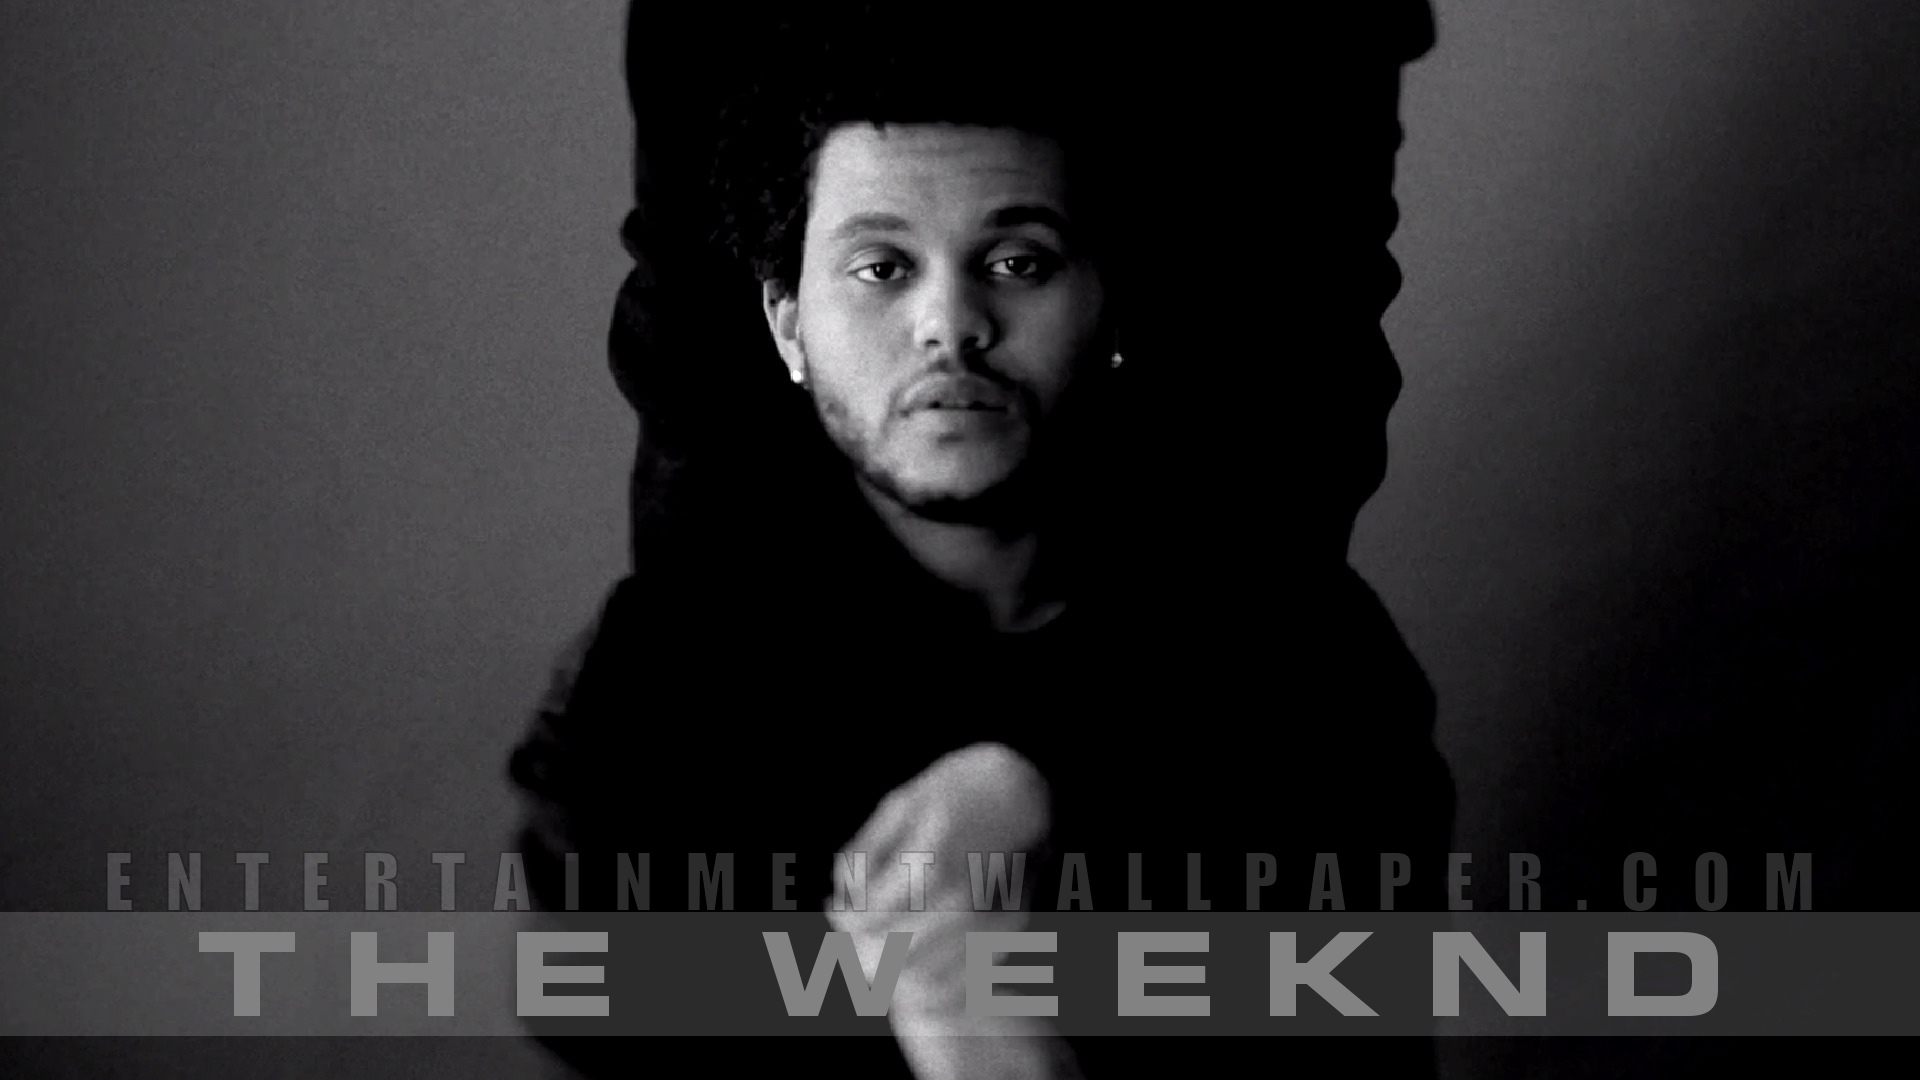 The Weeknd Name • Rap Wallpapers